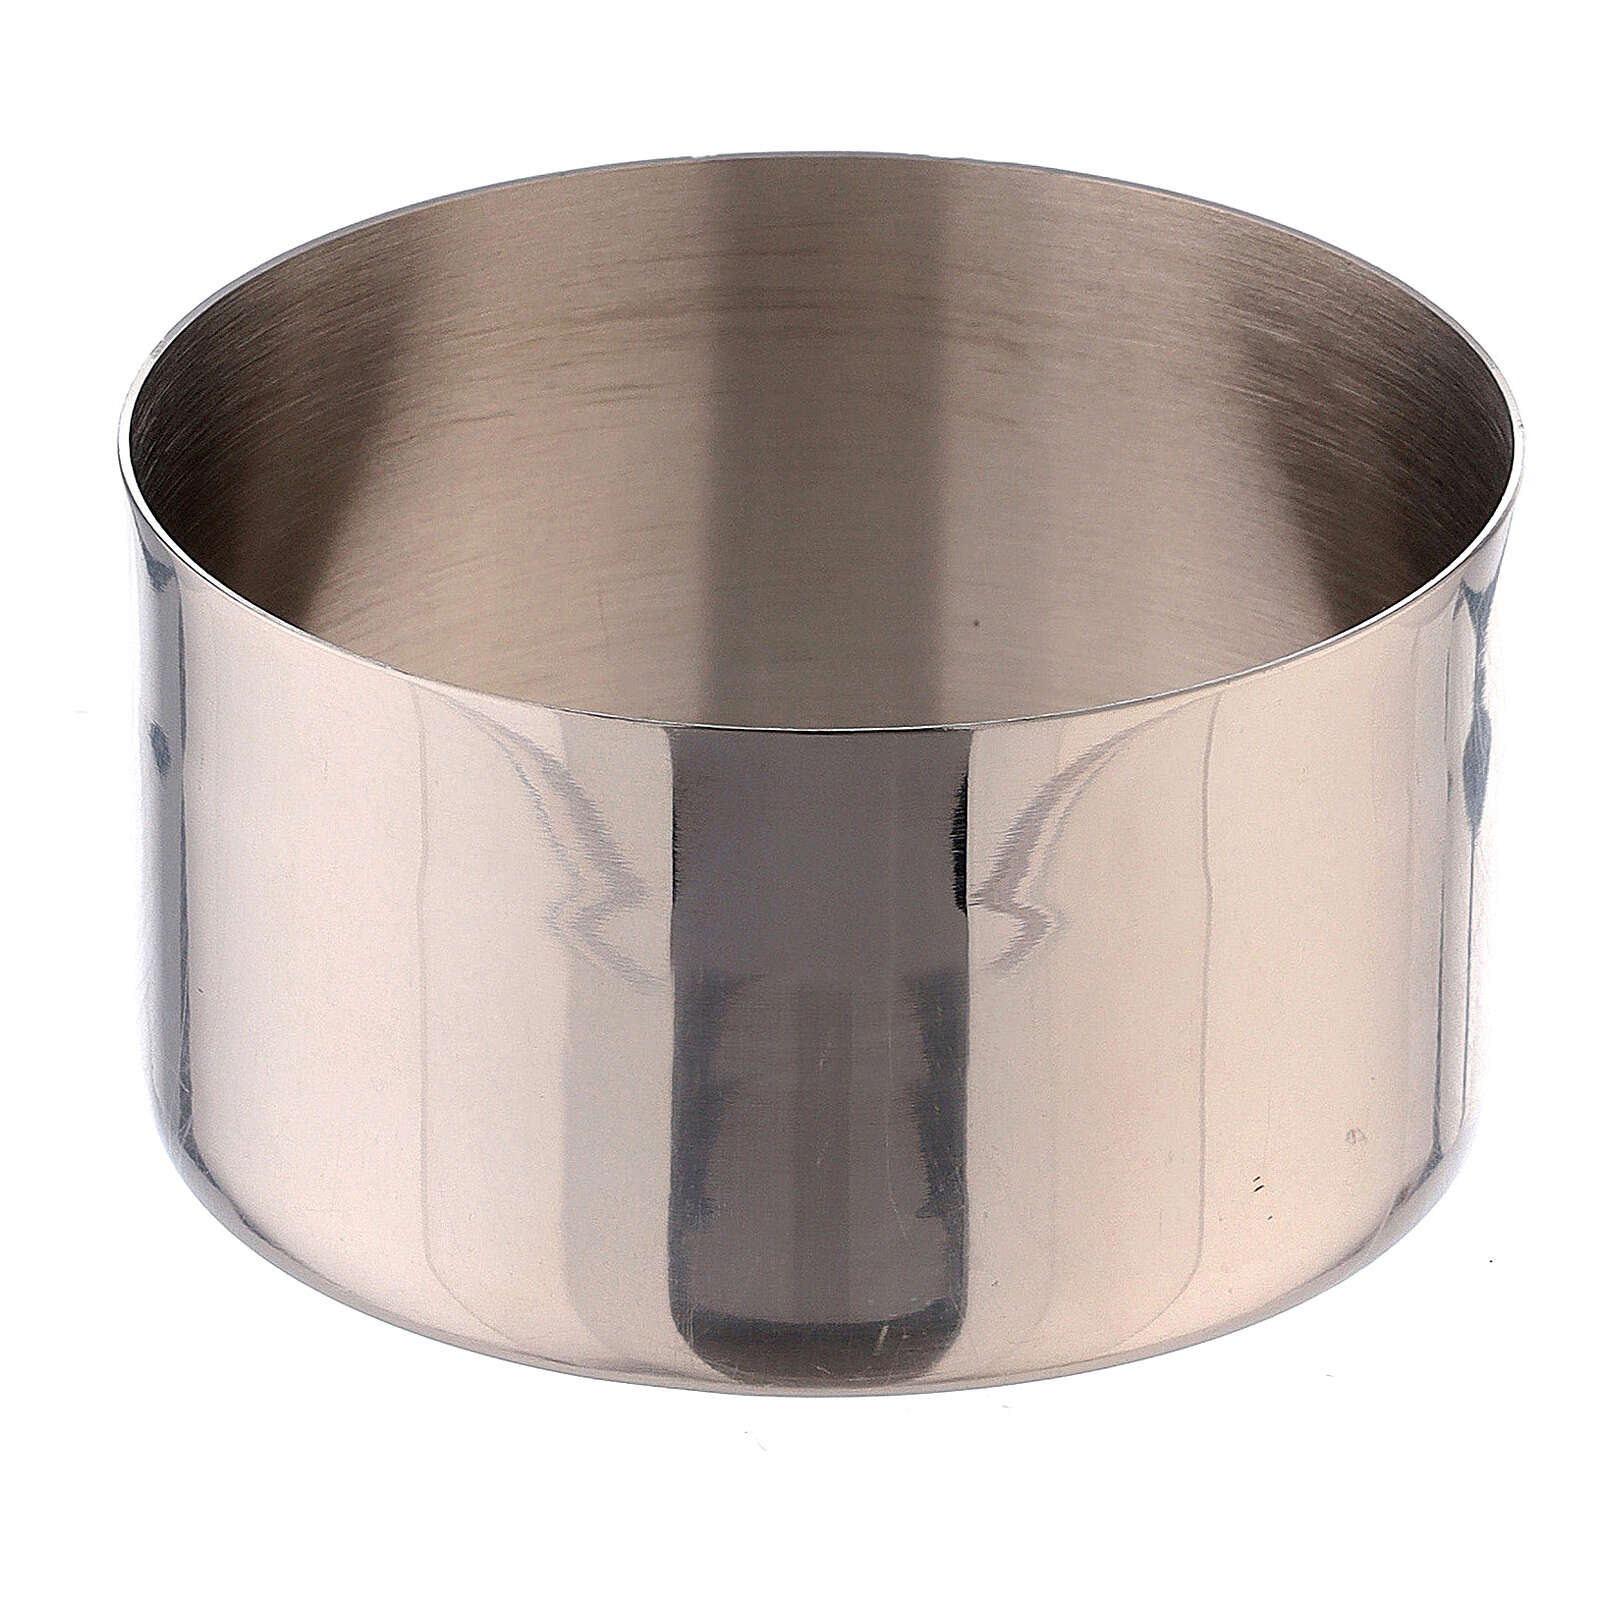 Candle ring of nickel-plated brass 1 1/2 in 4